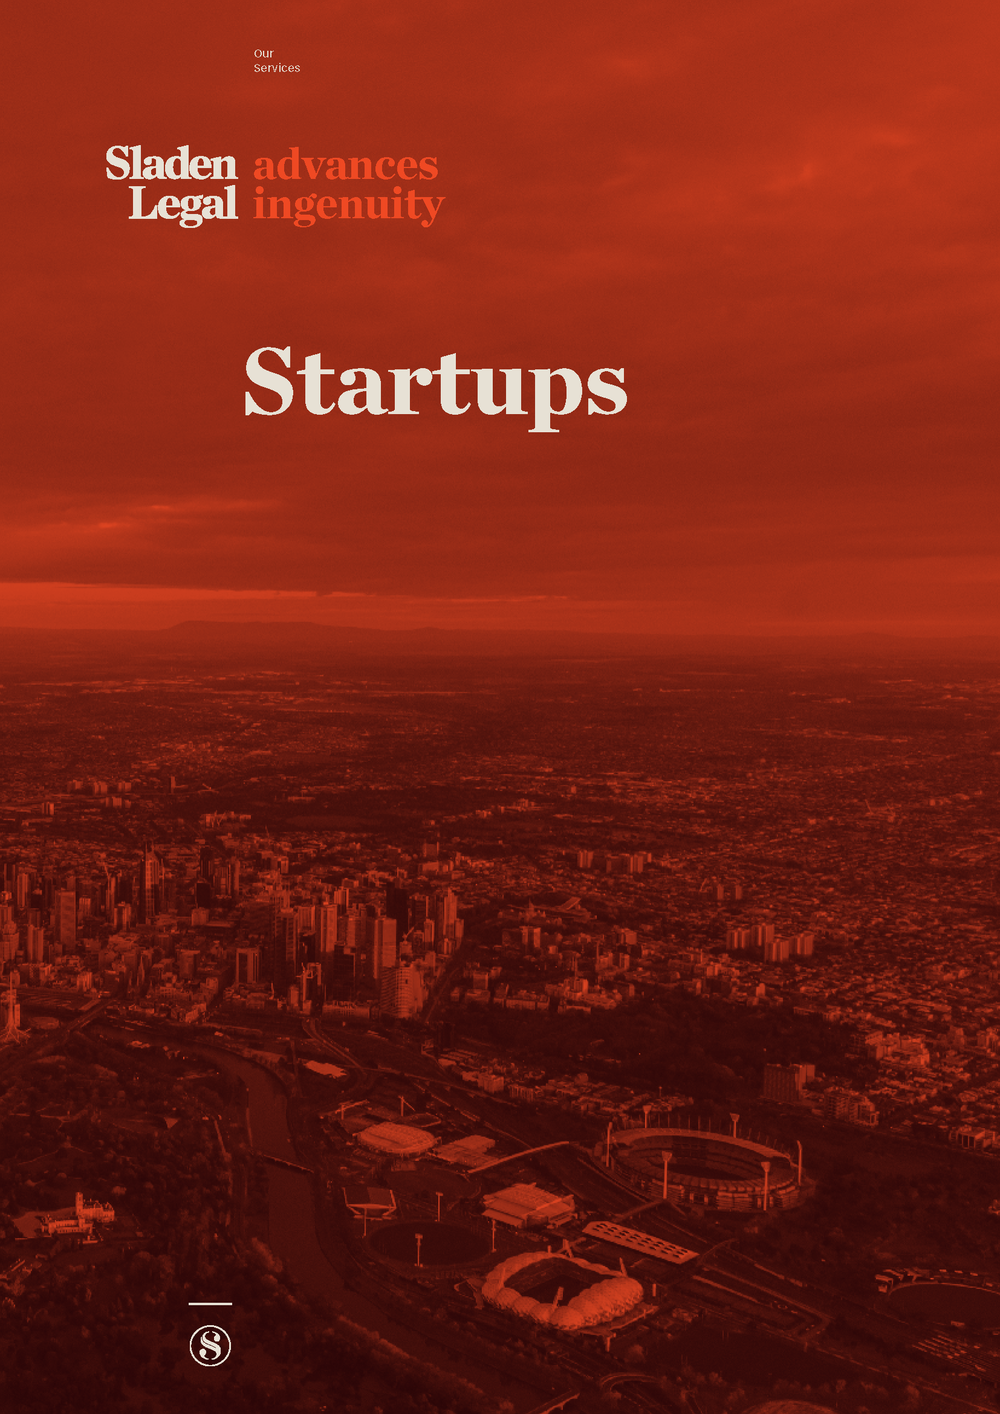 If you are a Startup, then we are for you.  For more info download our Startups brochure -